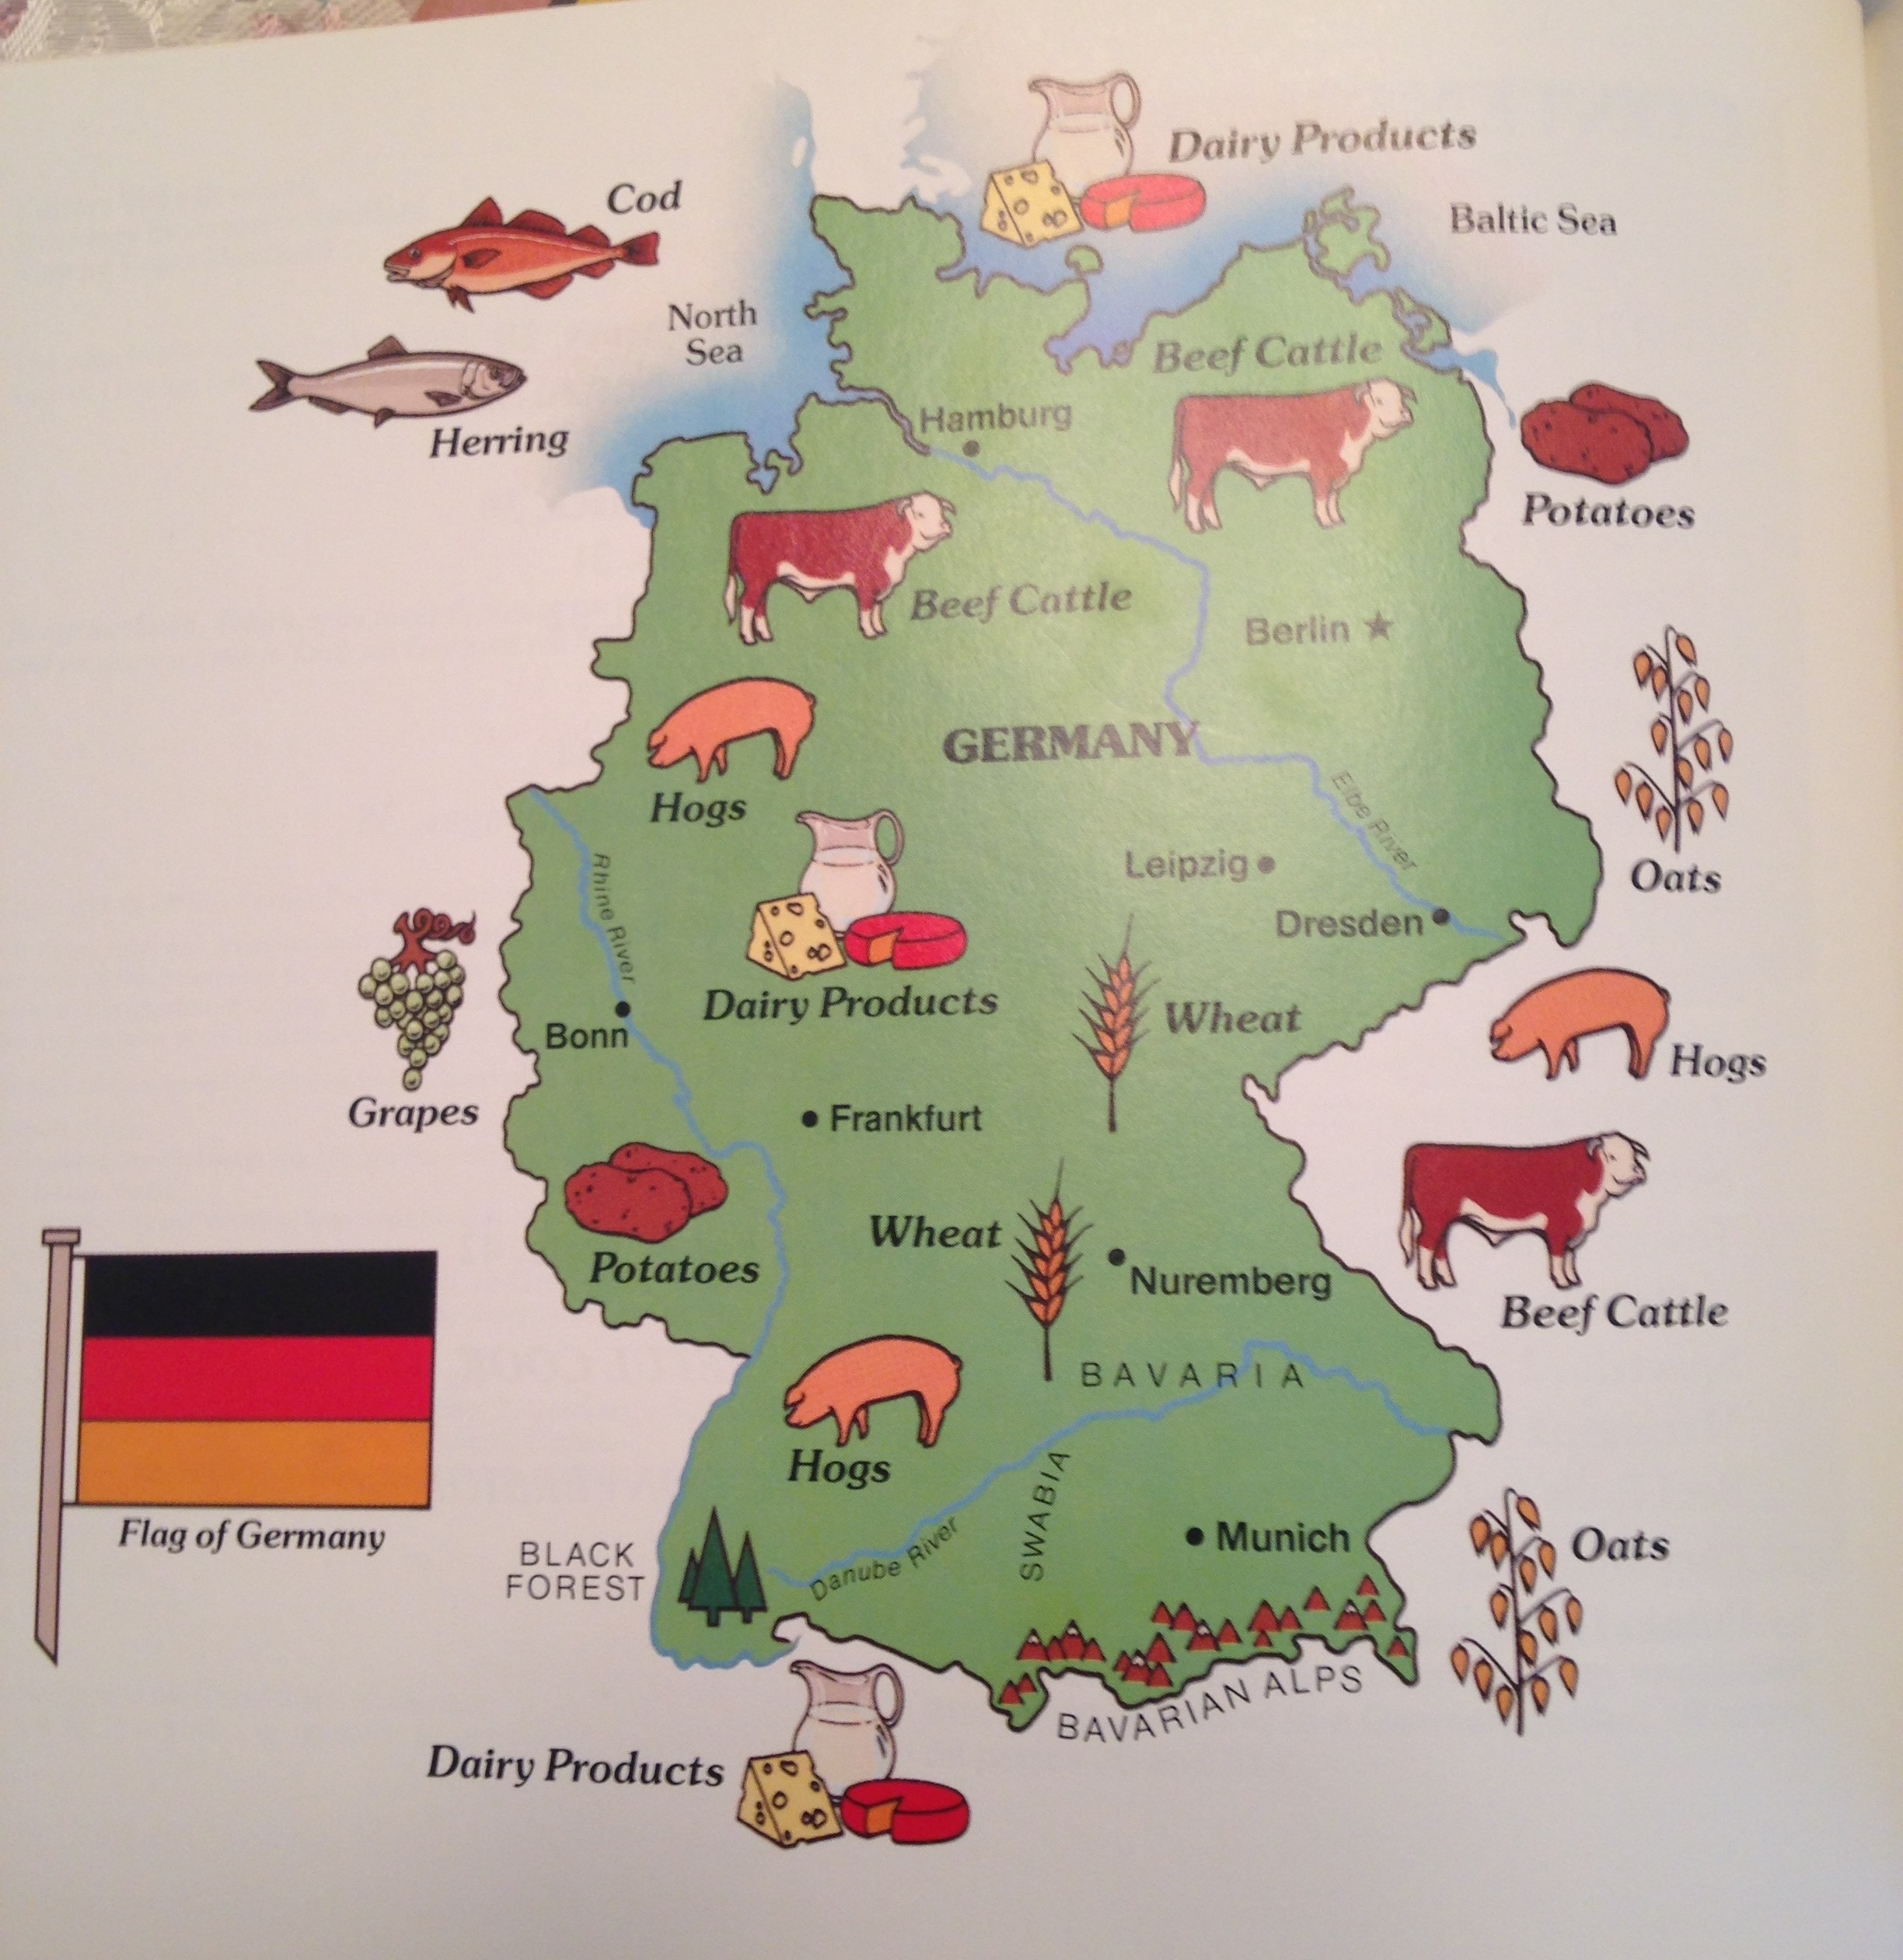 German food in america through the years foodways in focus a map of germany showing various food preferences by region sciox Image collections